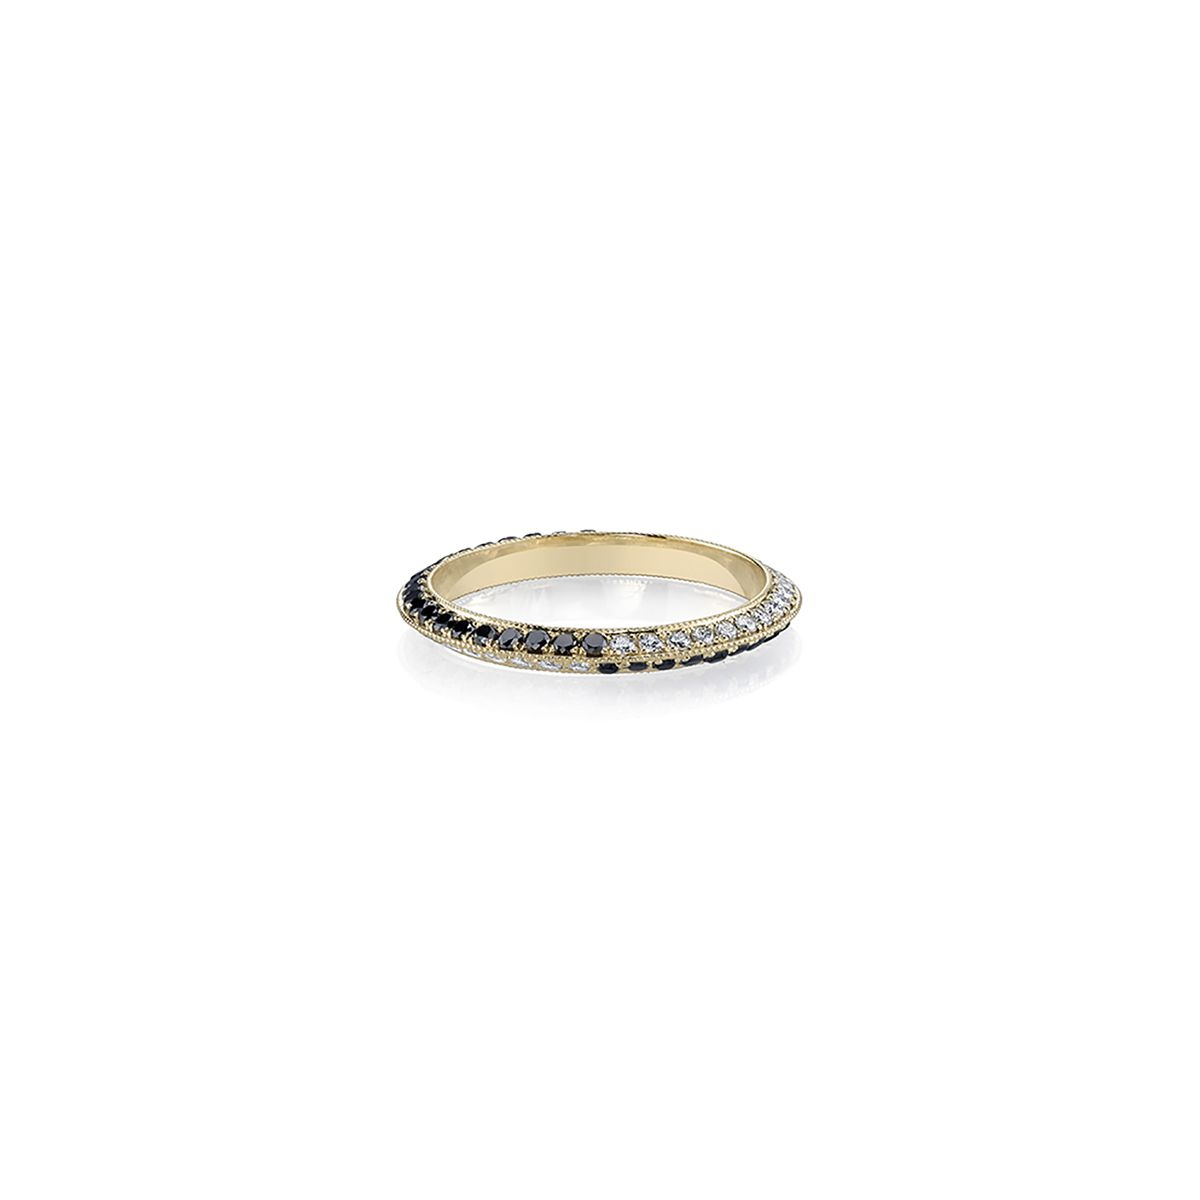 Lizzie Mandler Gold Knife Edge Ring With Black and White Pavé